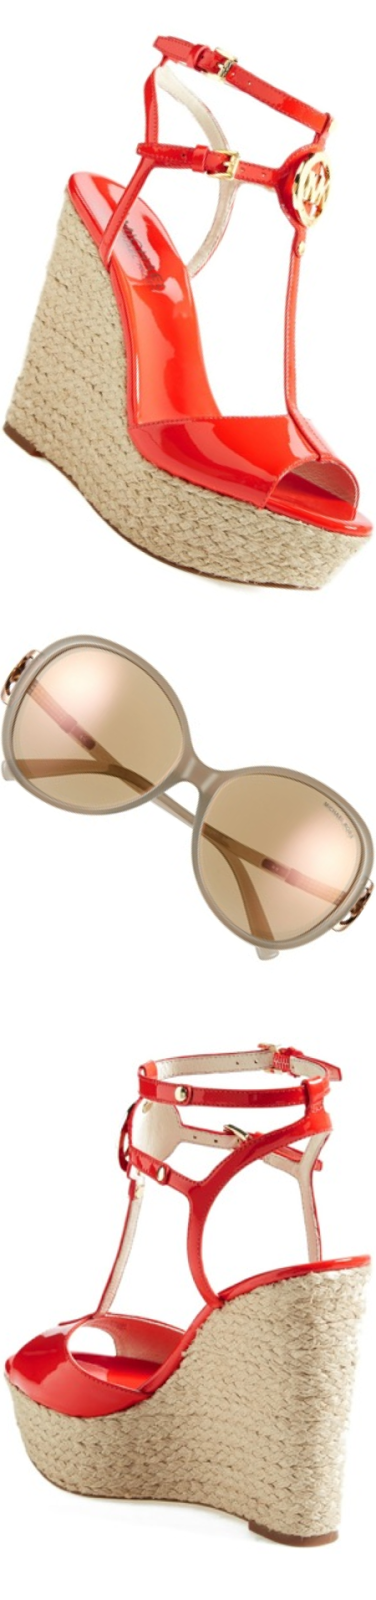 Michael Kors Collection 58mm Pavé Stone Sunglasses